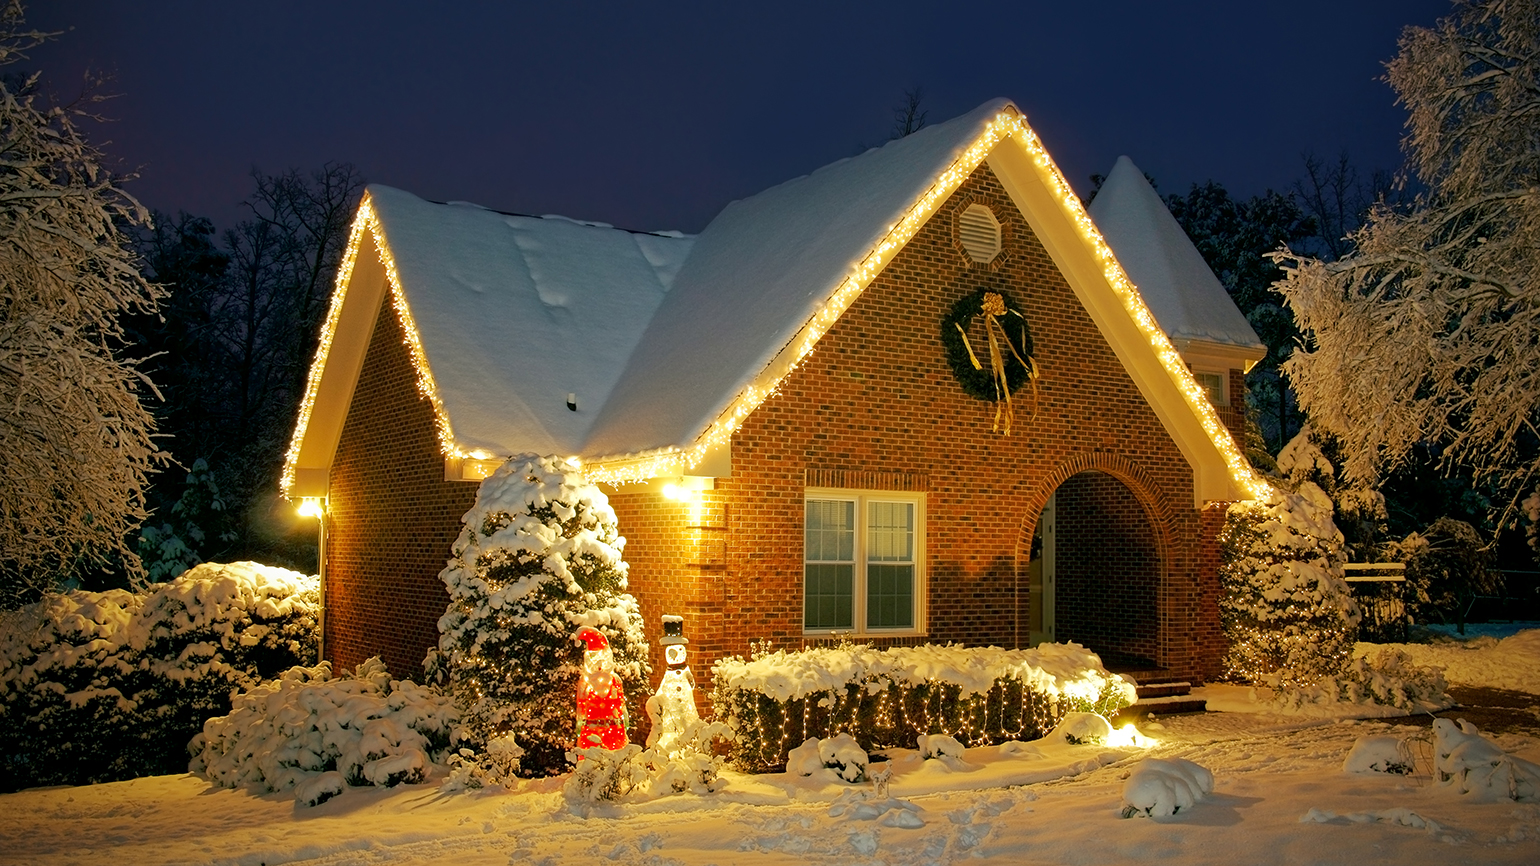 A modest warmly illuminated by Christmas lights